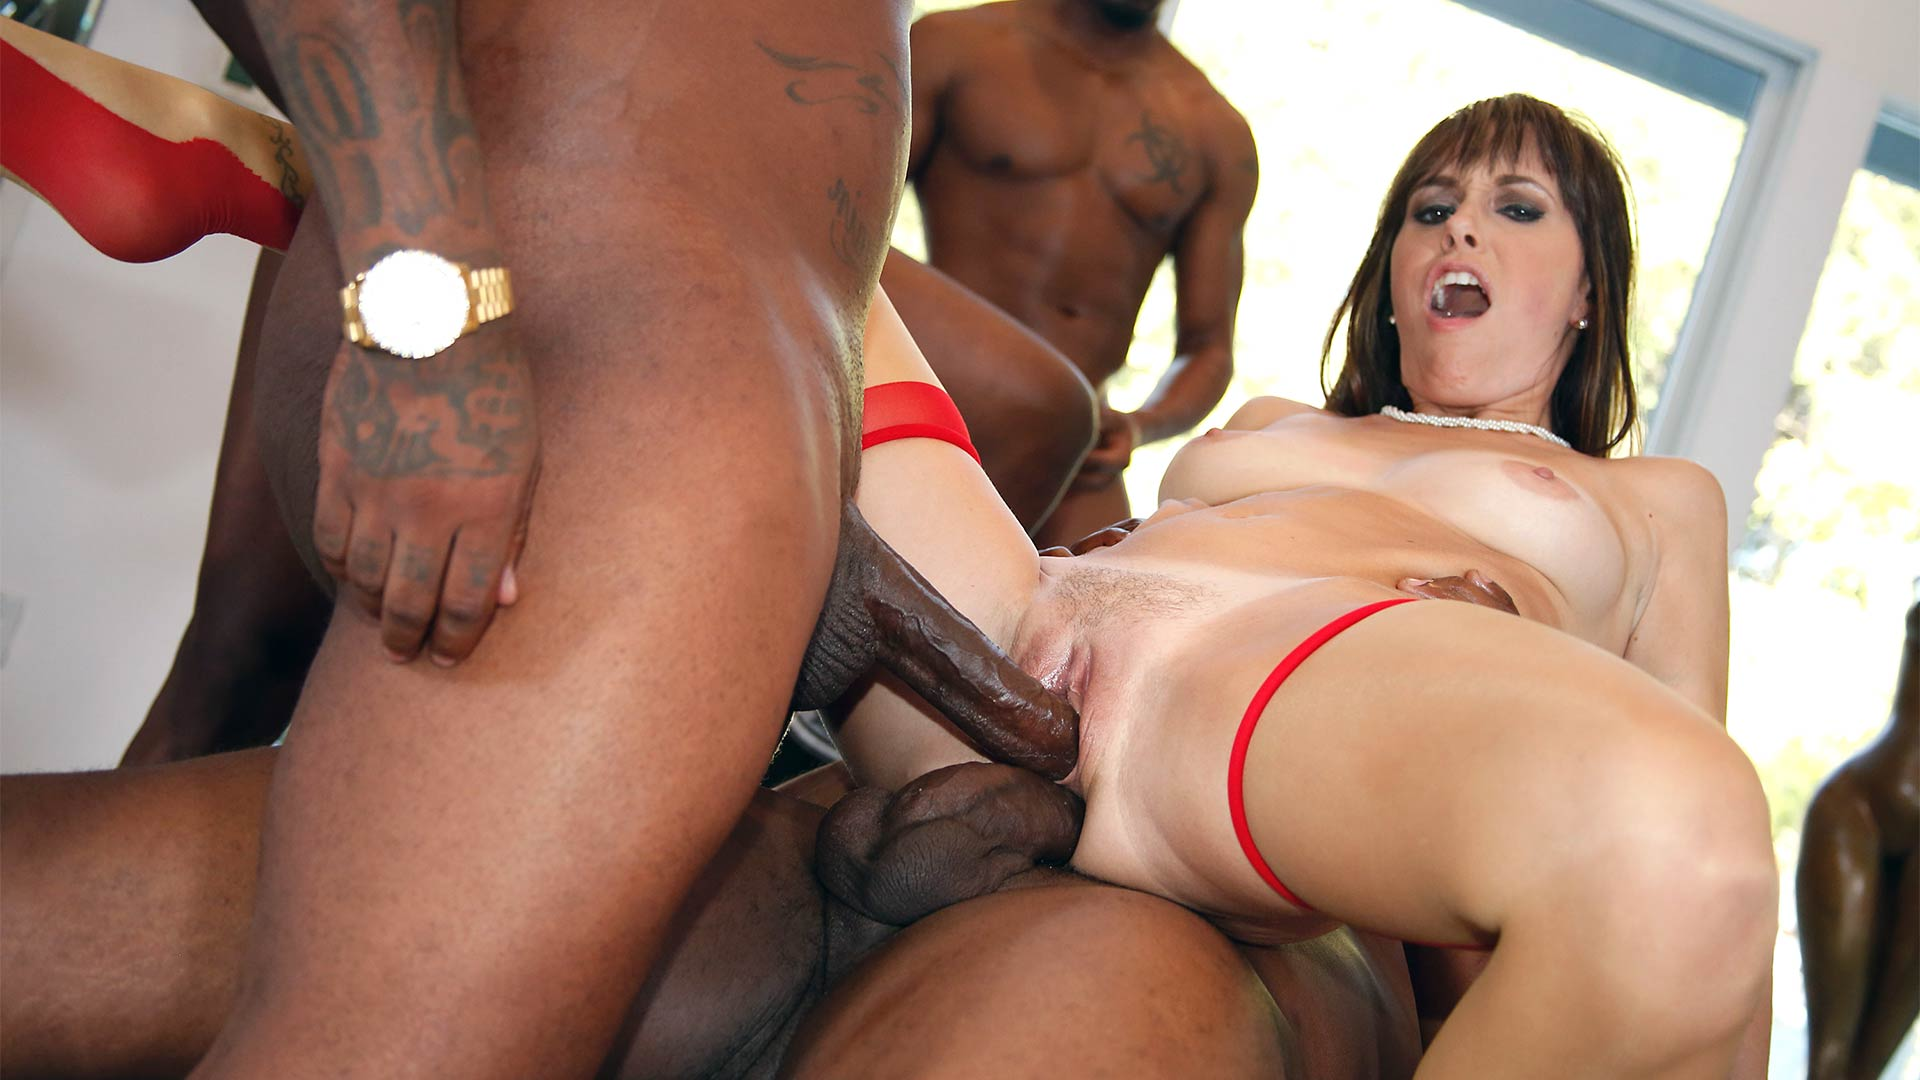 WatchingMyMomGoBlack Alana Cruise Interracial Porn